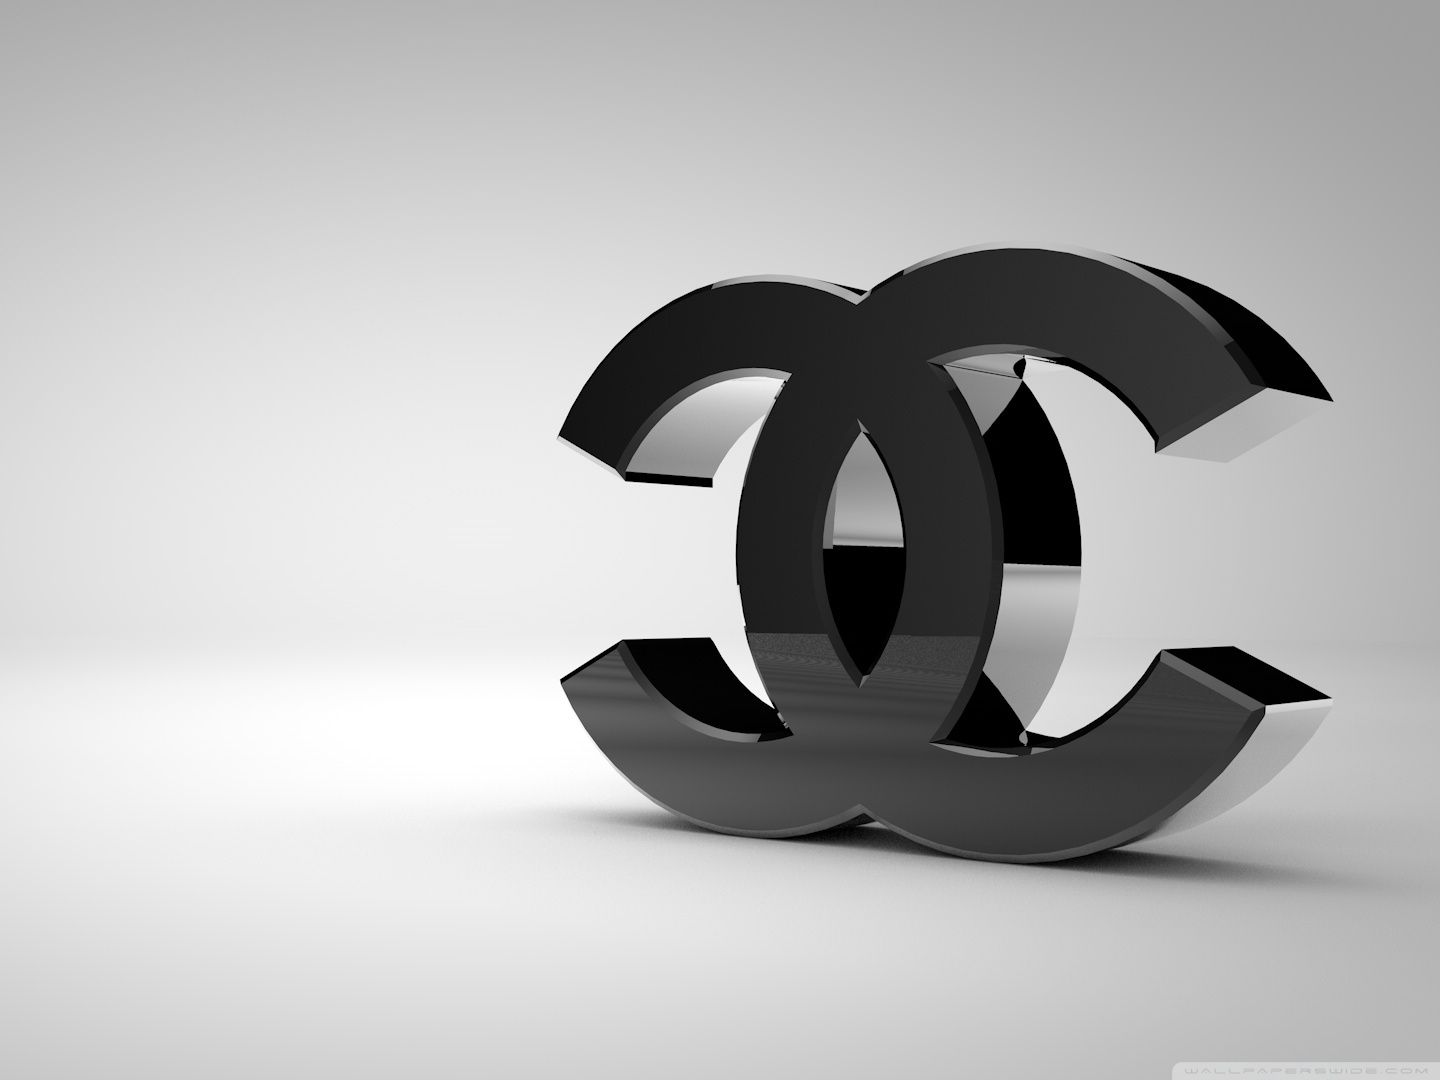 Chanel Wallpaper Chanel Image Galleries Wallpapers